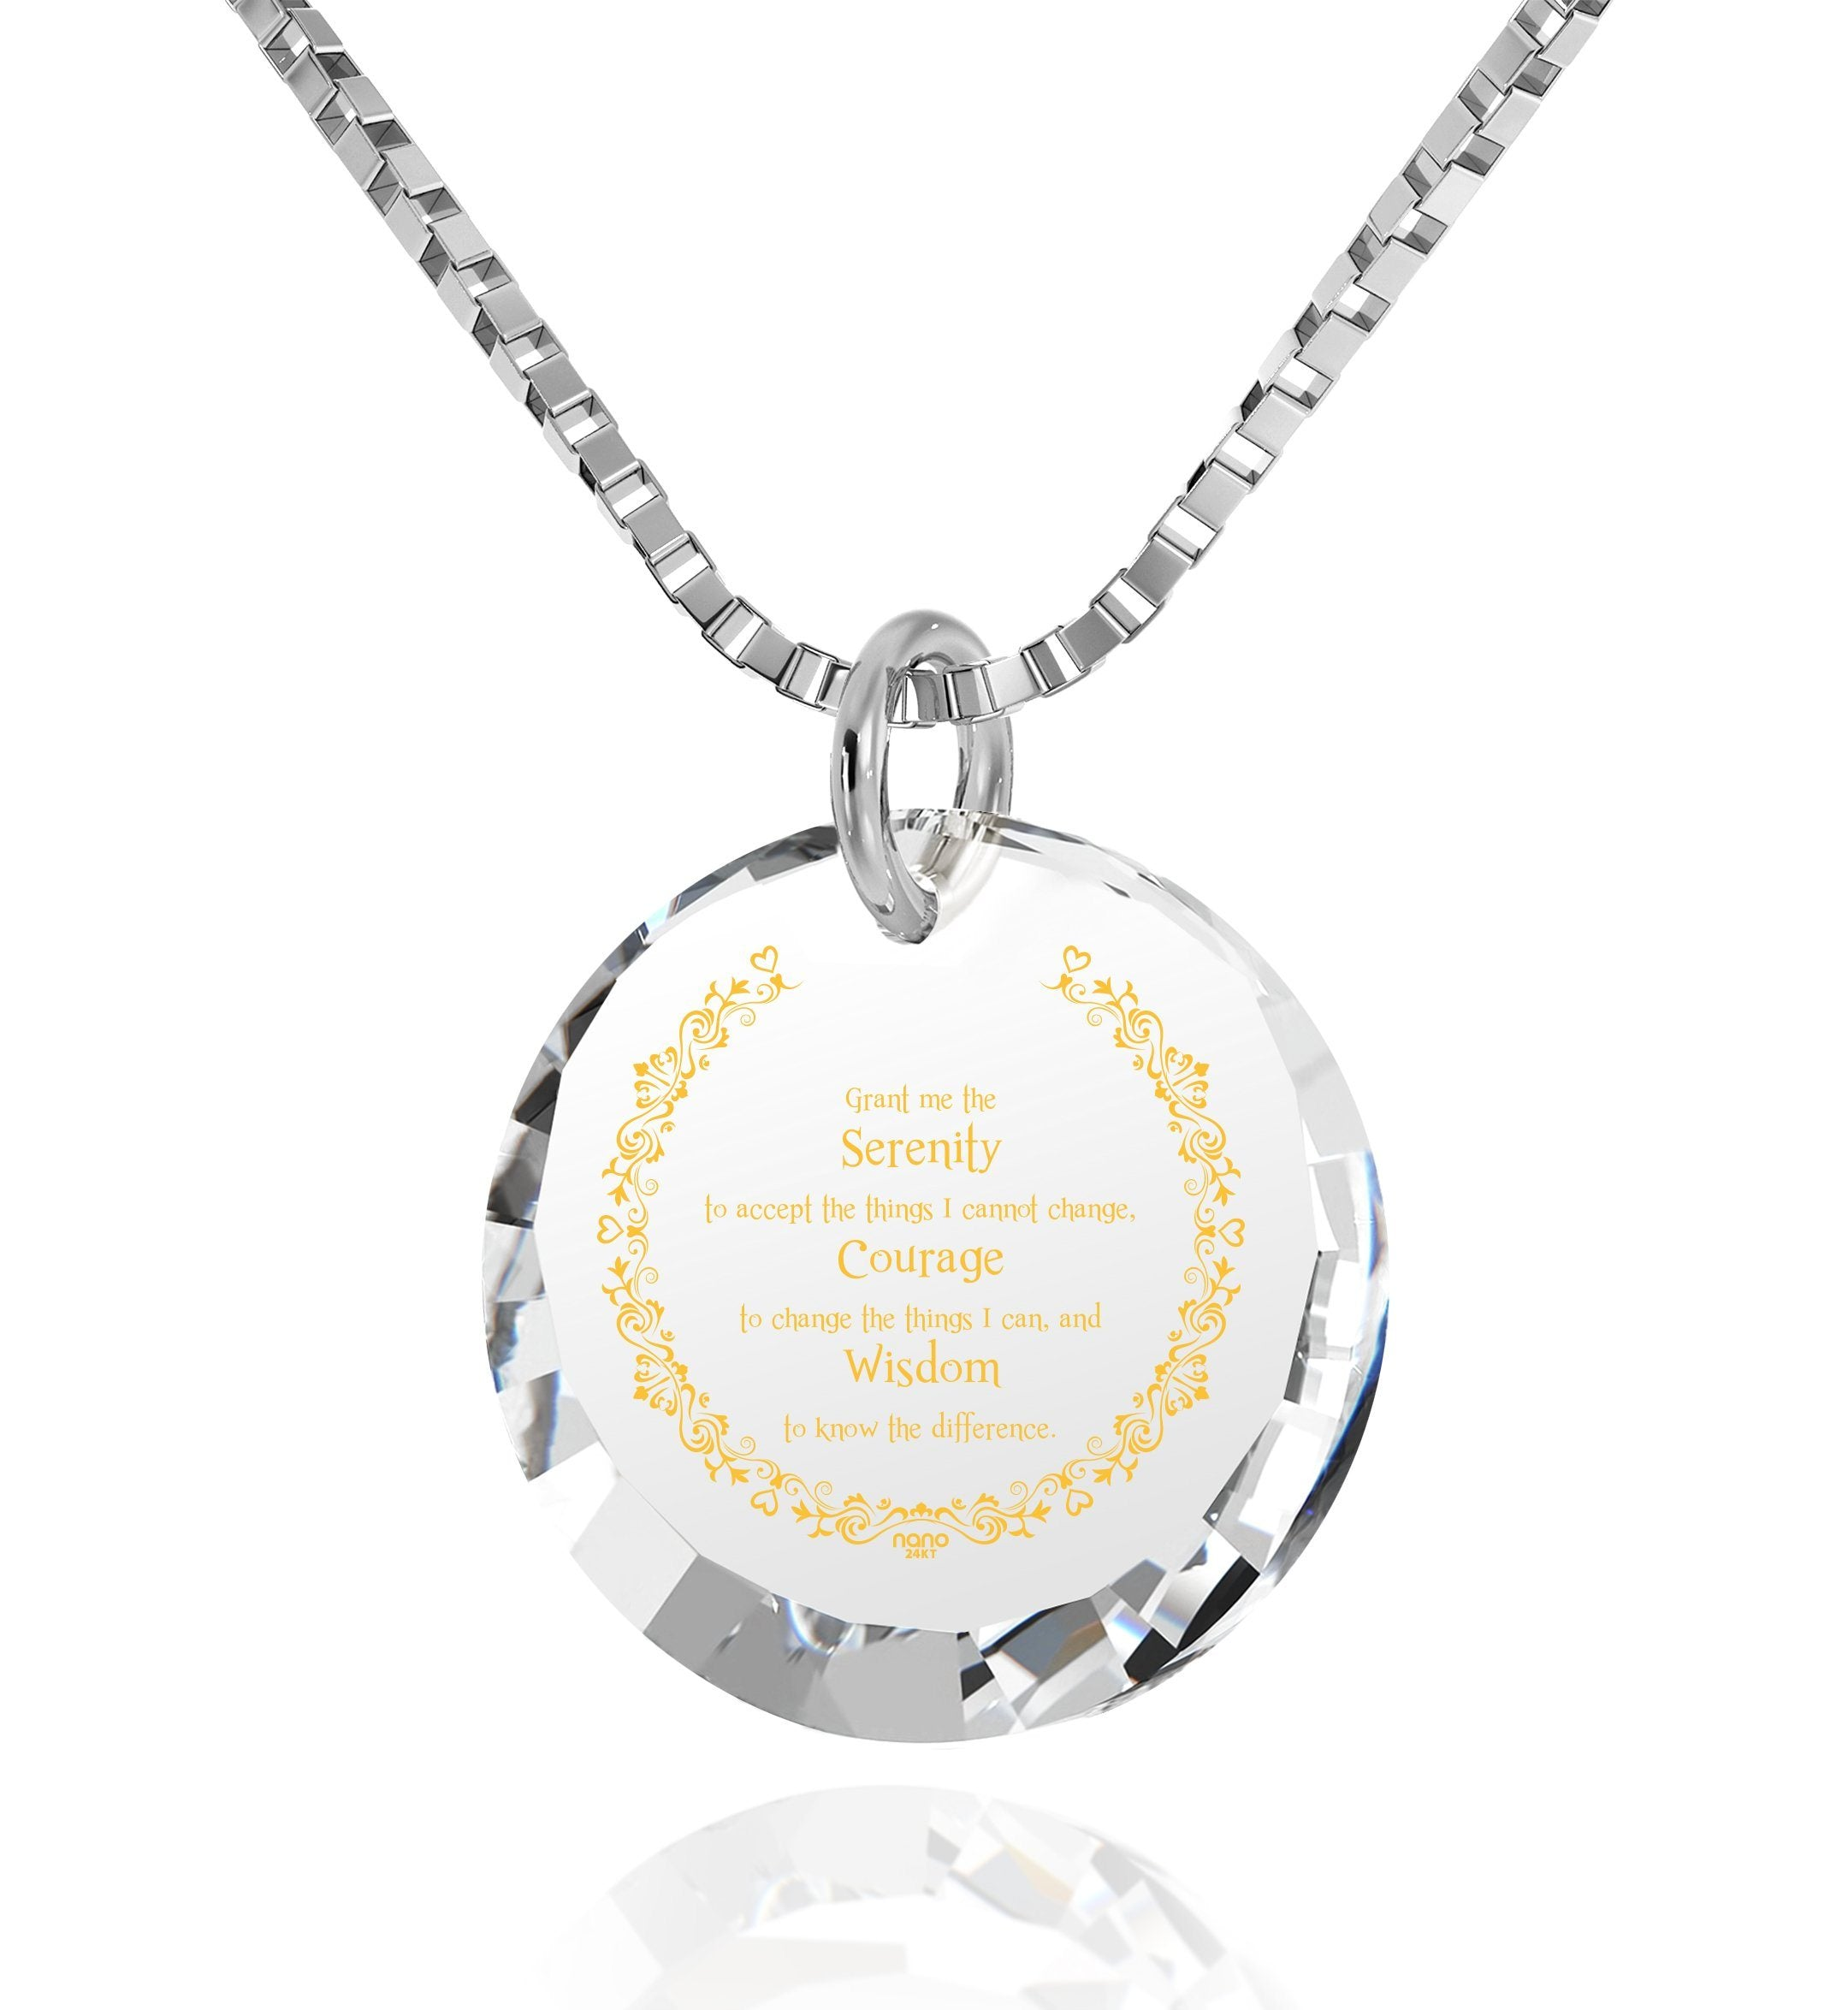 hallmark connections from walmart prayer steel stainless oval ip necklace serenity pendant com